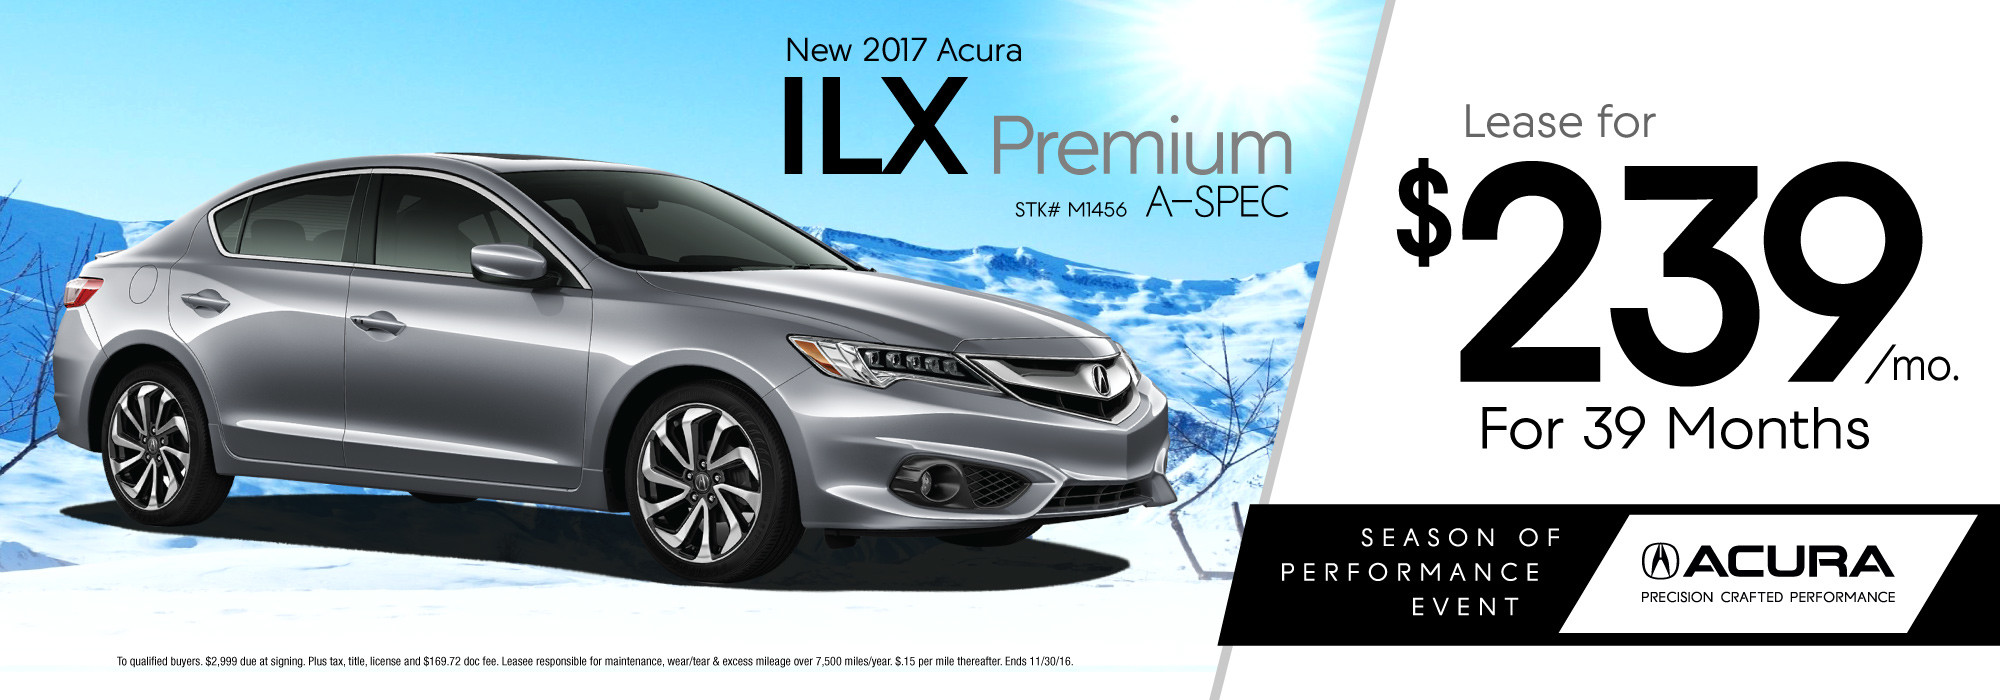 Lease Specials McGrath Acura Of Morton Grove - Lease an acura